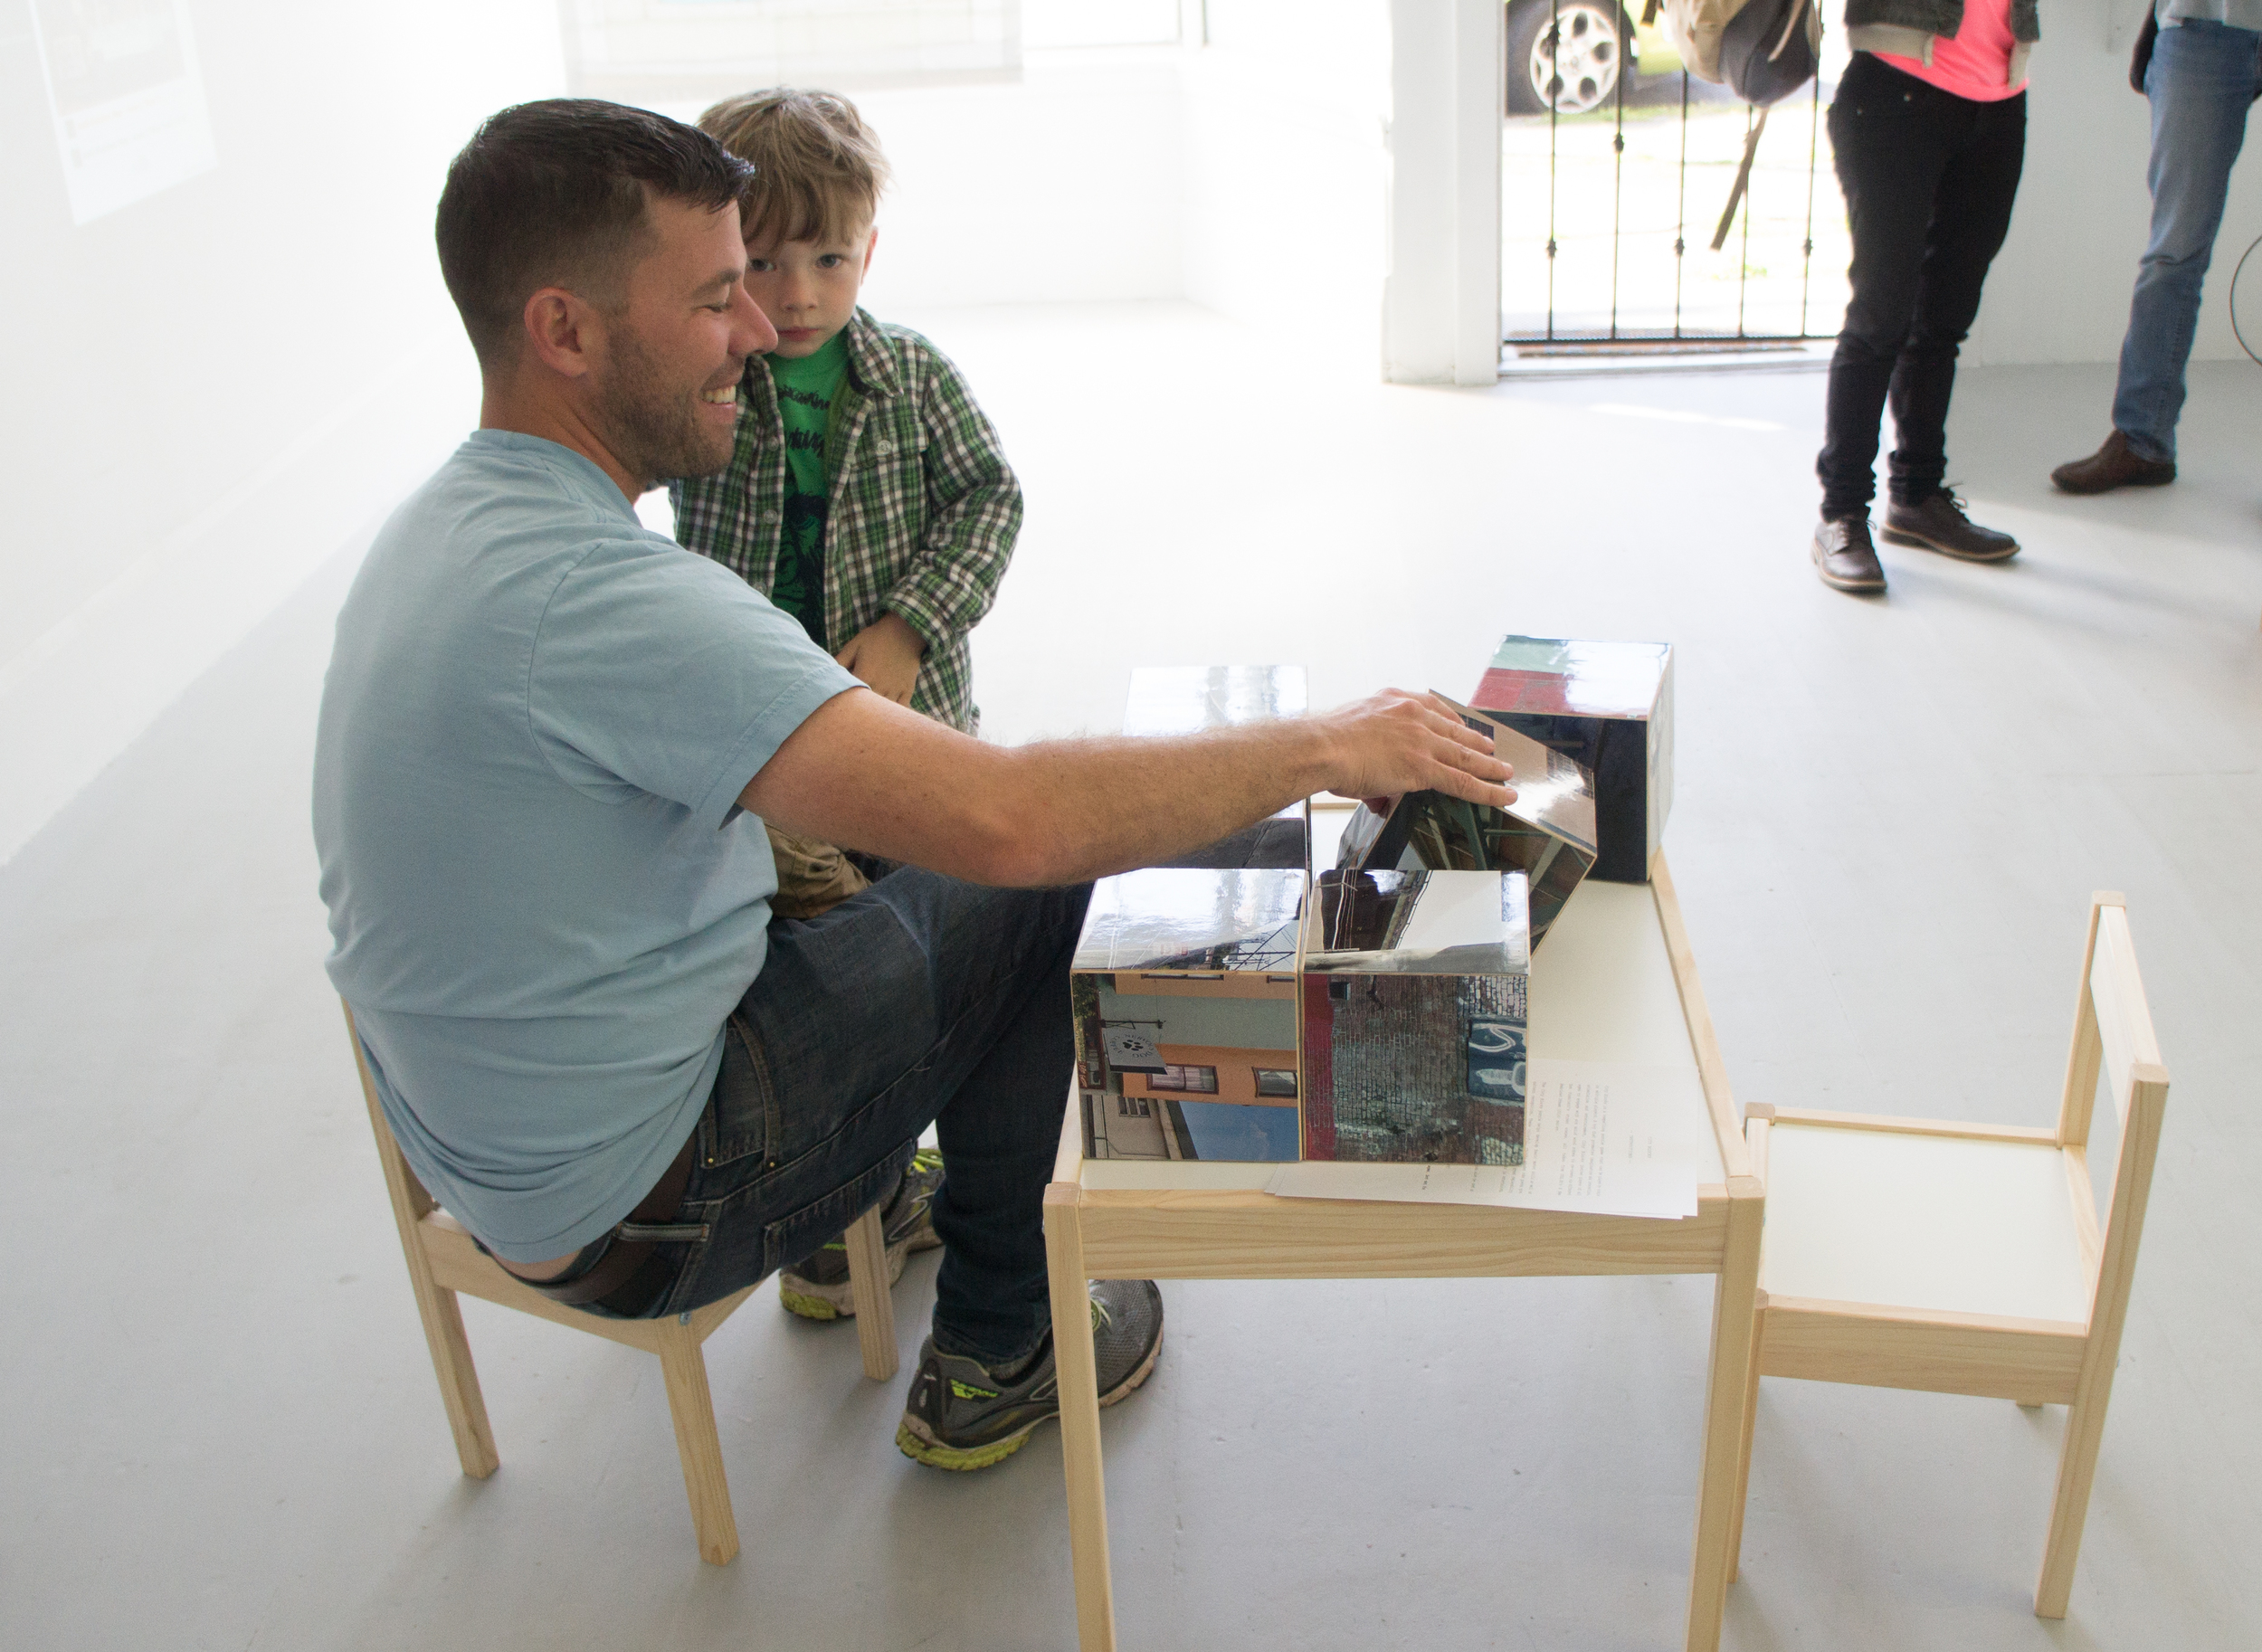 COLL.EO's City Blocks,six wooden blocks with images measuring 6 x 6 x 6 inches, arranged on an IKEA's LÄTT children wooden table and two wooden chairs. Table size: 24 ¾ (L) x 18 ⅞ (W) x 17 ¾ (H). Chair size: 11 (L) x 11 (D) x 11 (H).